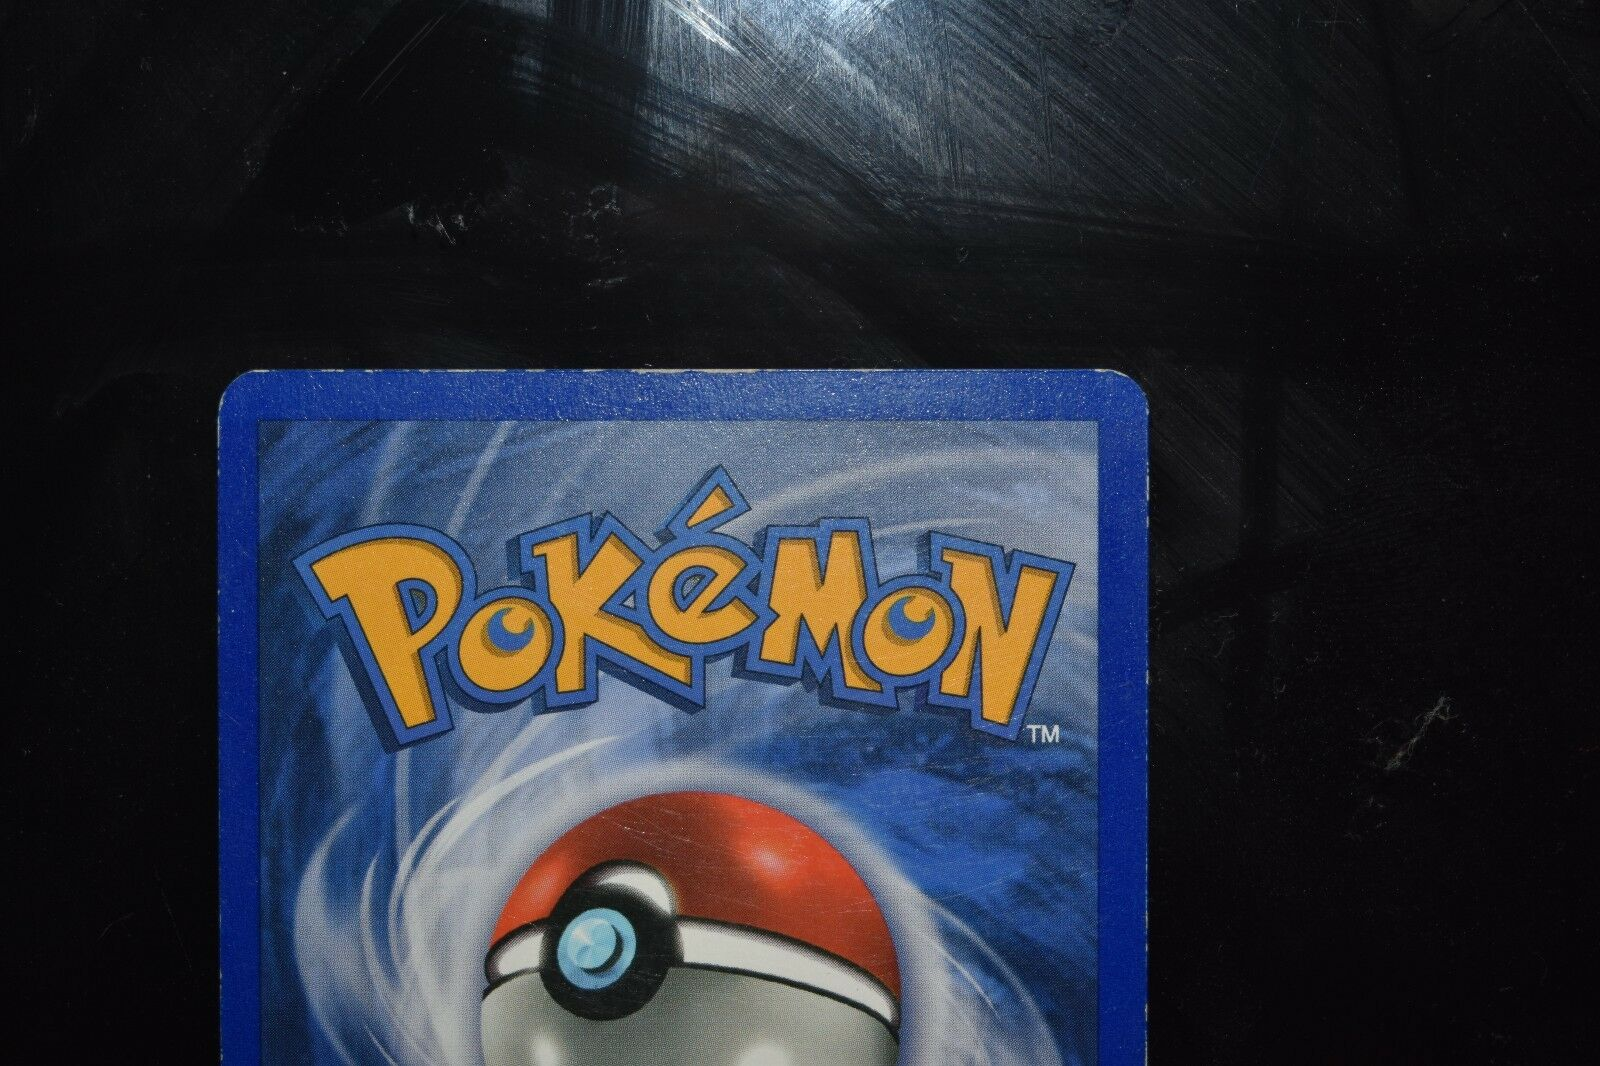 Pokemon Card, Venusaur, Venusaur, Venusaur, edition 3, Condition 9, Hologram ef9166